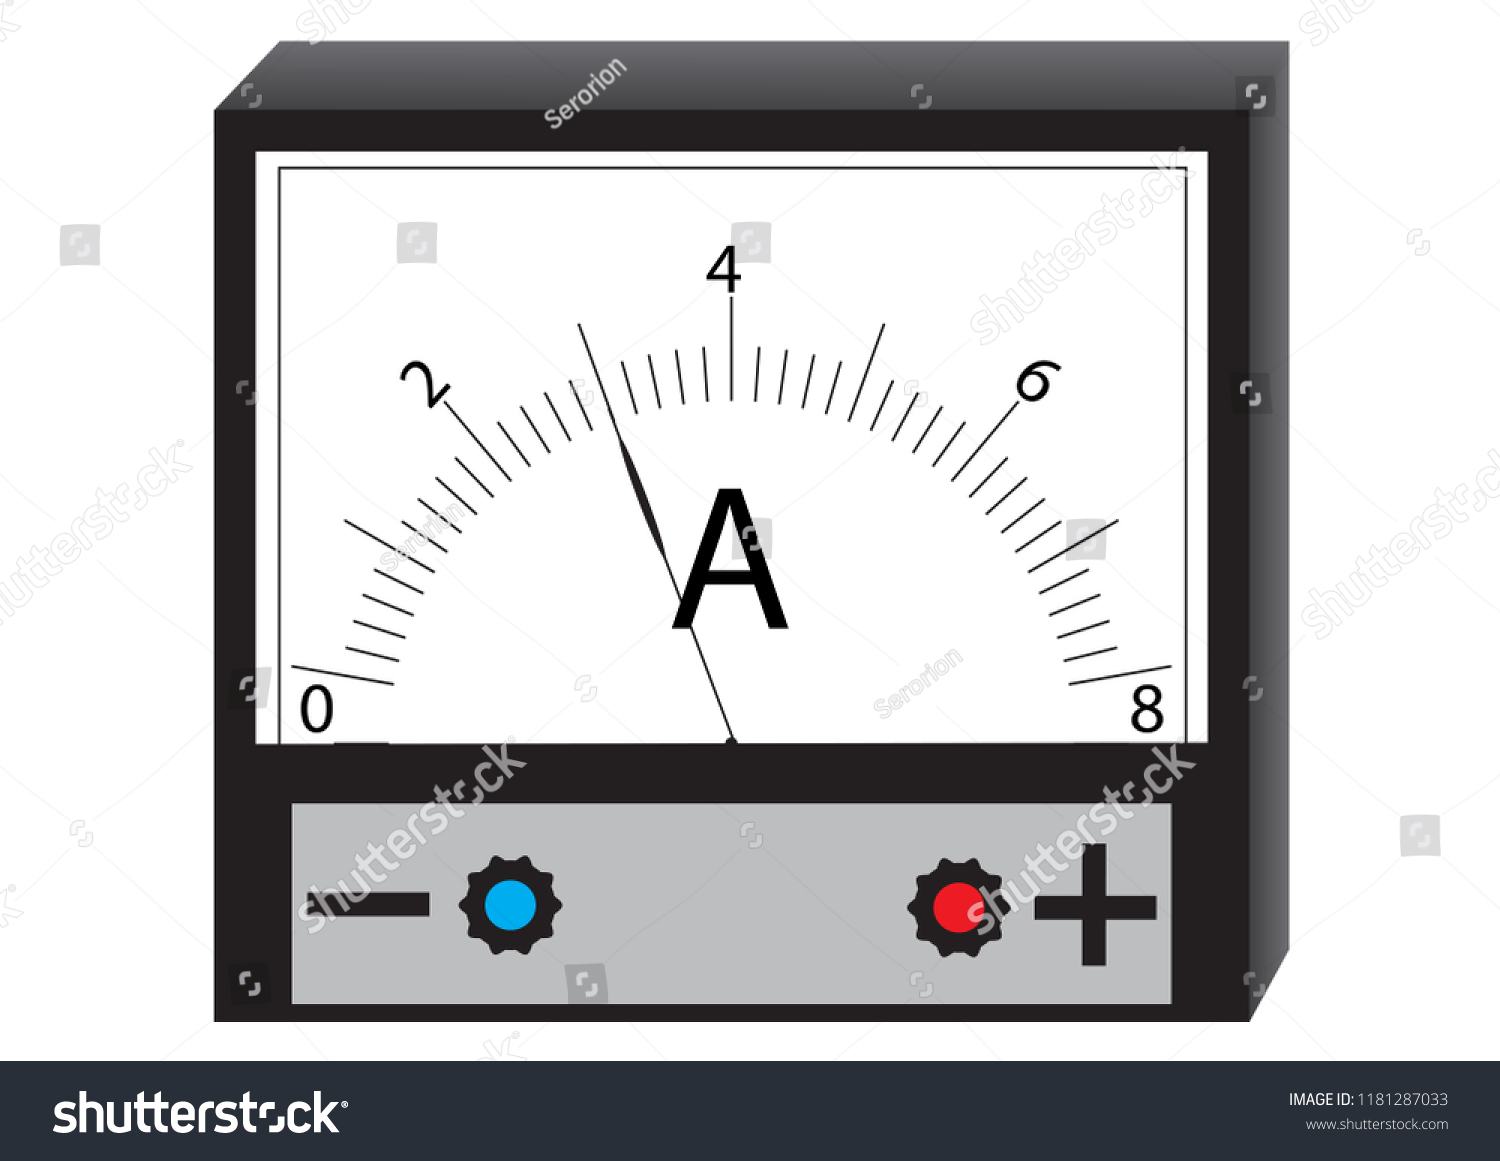 Ammeter Physical Device Measuring Current Electrical Stock Vector Amp Meter Circuit A For The In